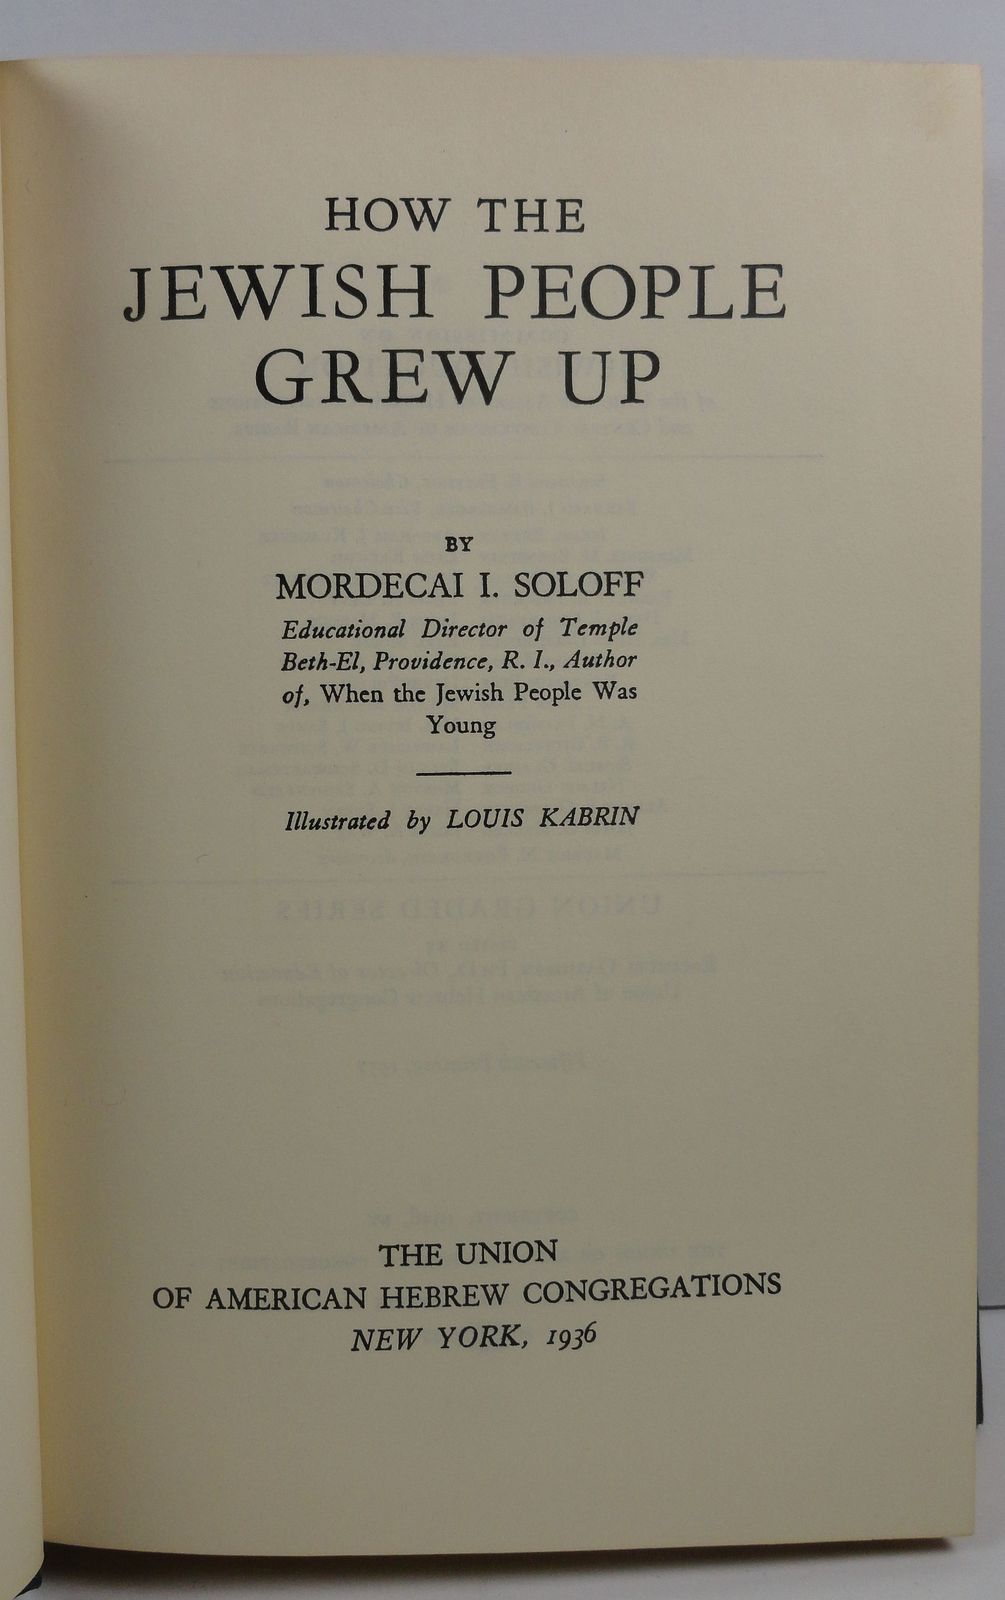 How the Jewish People Grew Up by Mordecai Soloff 1957